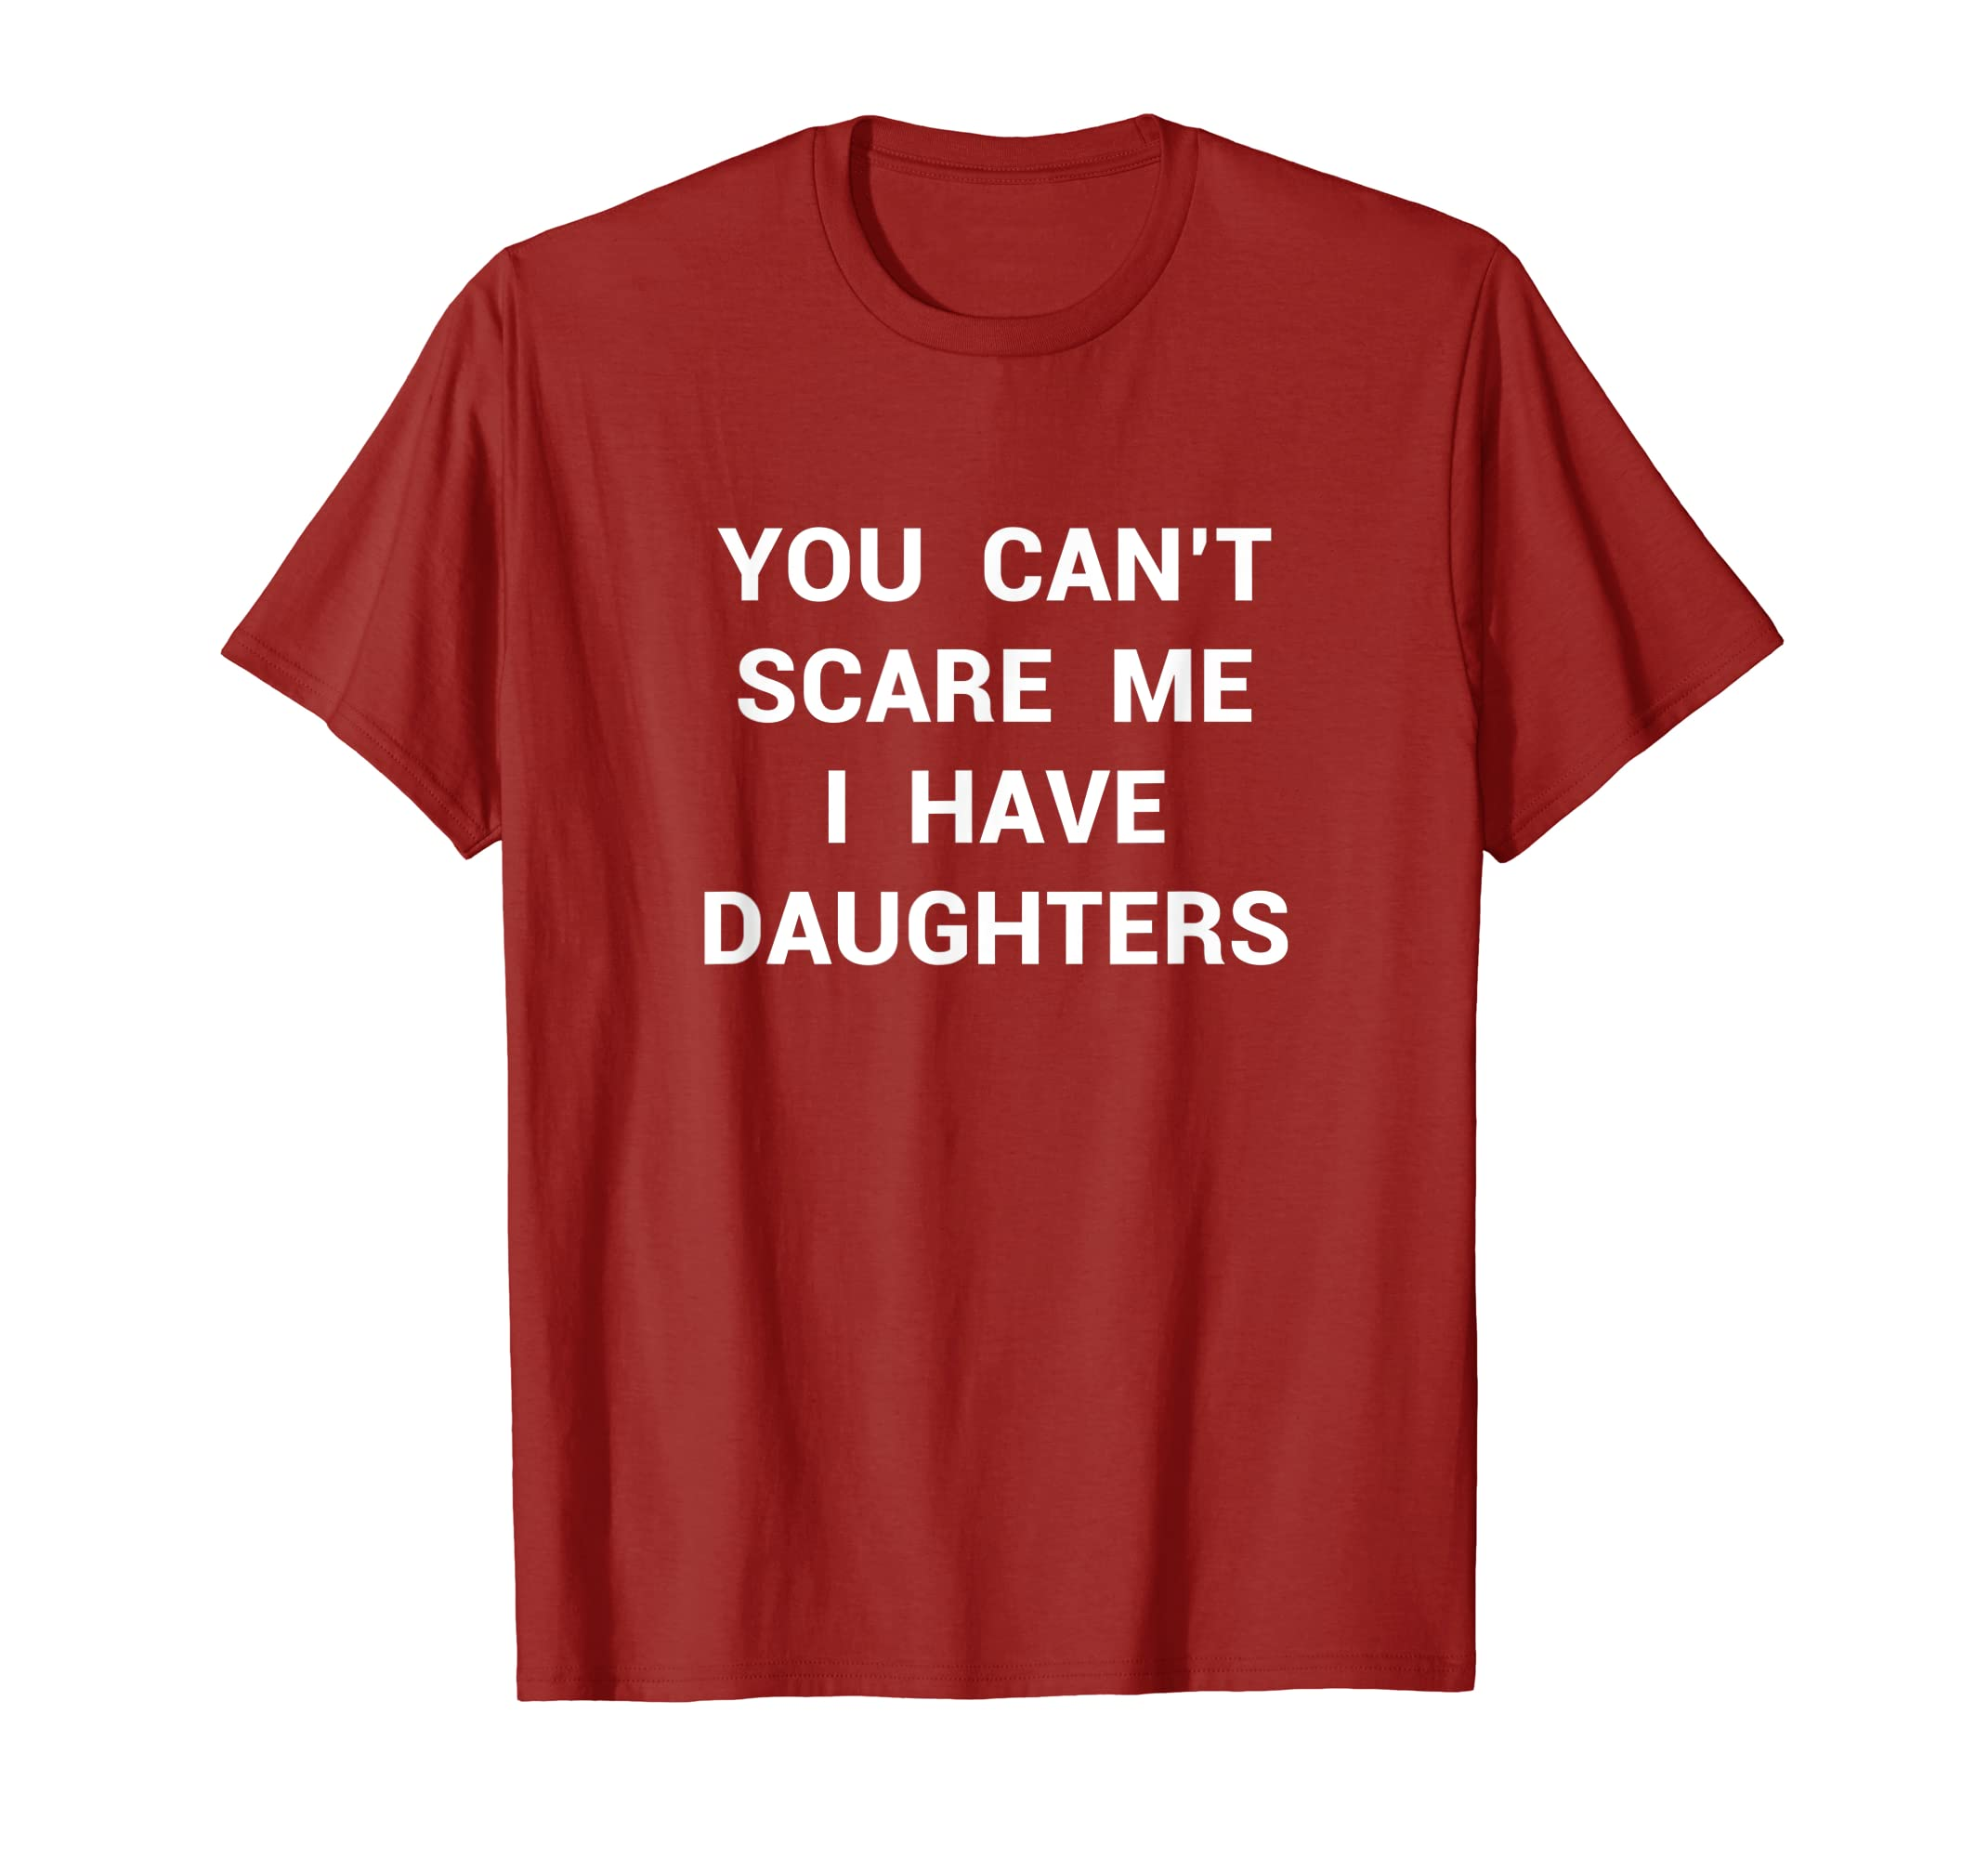 95d0c48a Amazon.com: Funny Daughter Shirt Fathers Day Gift Dads Stepdad Grandpa:  Clothing